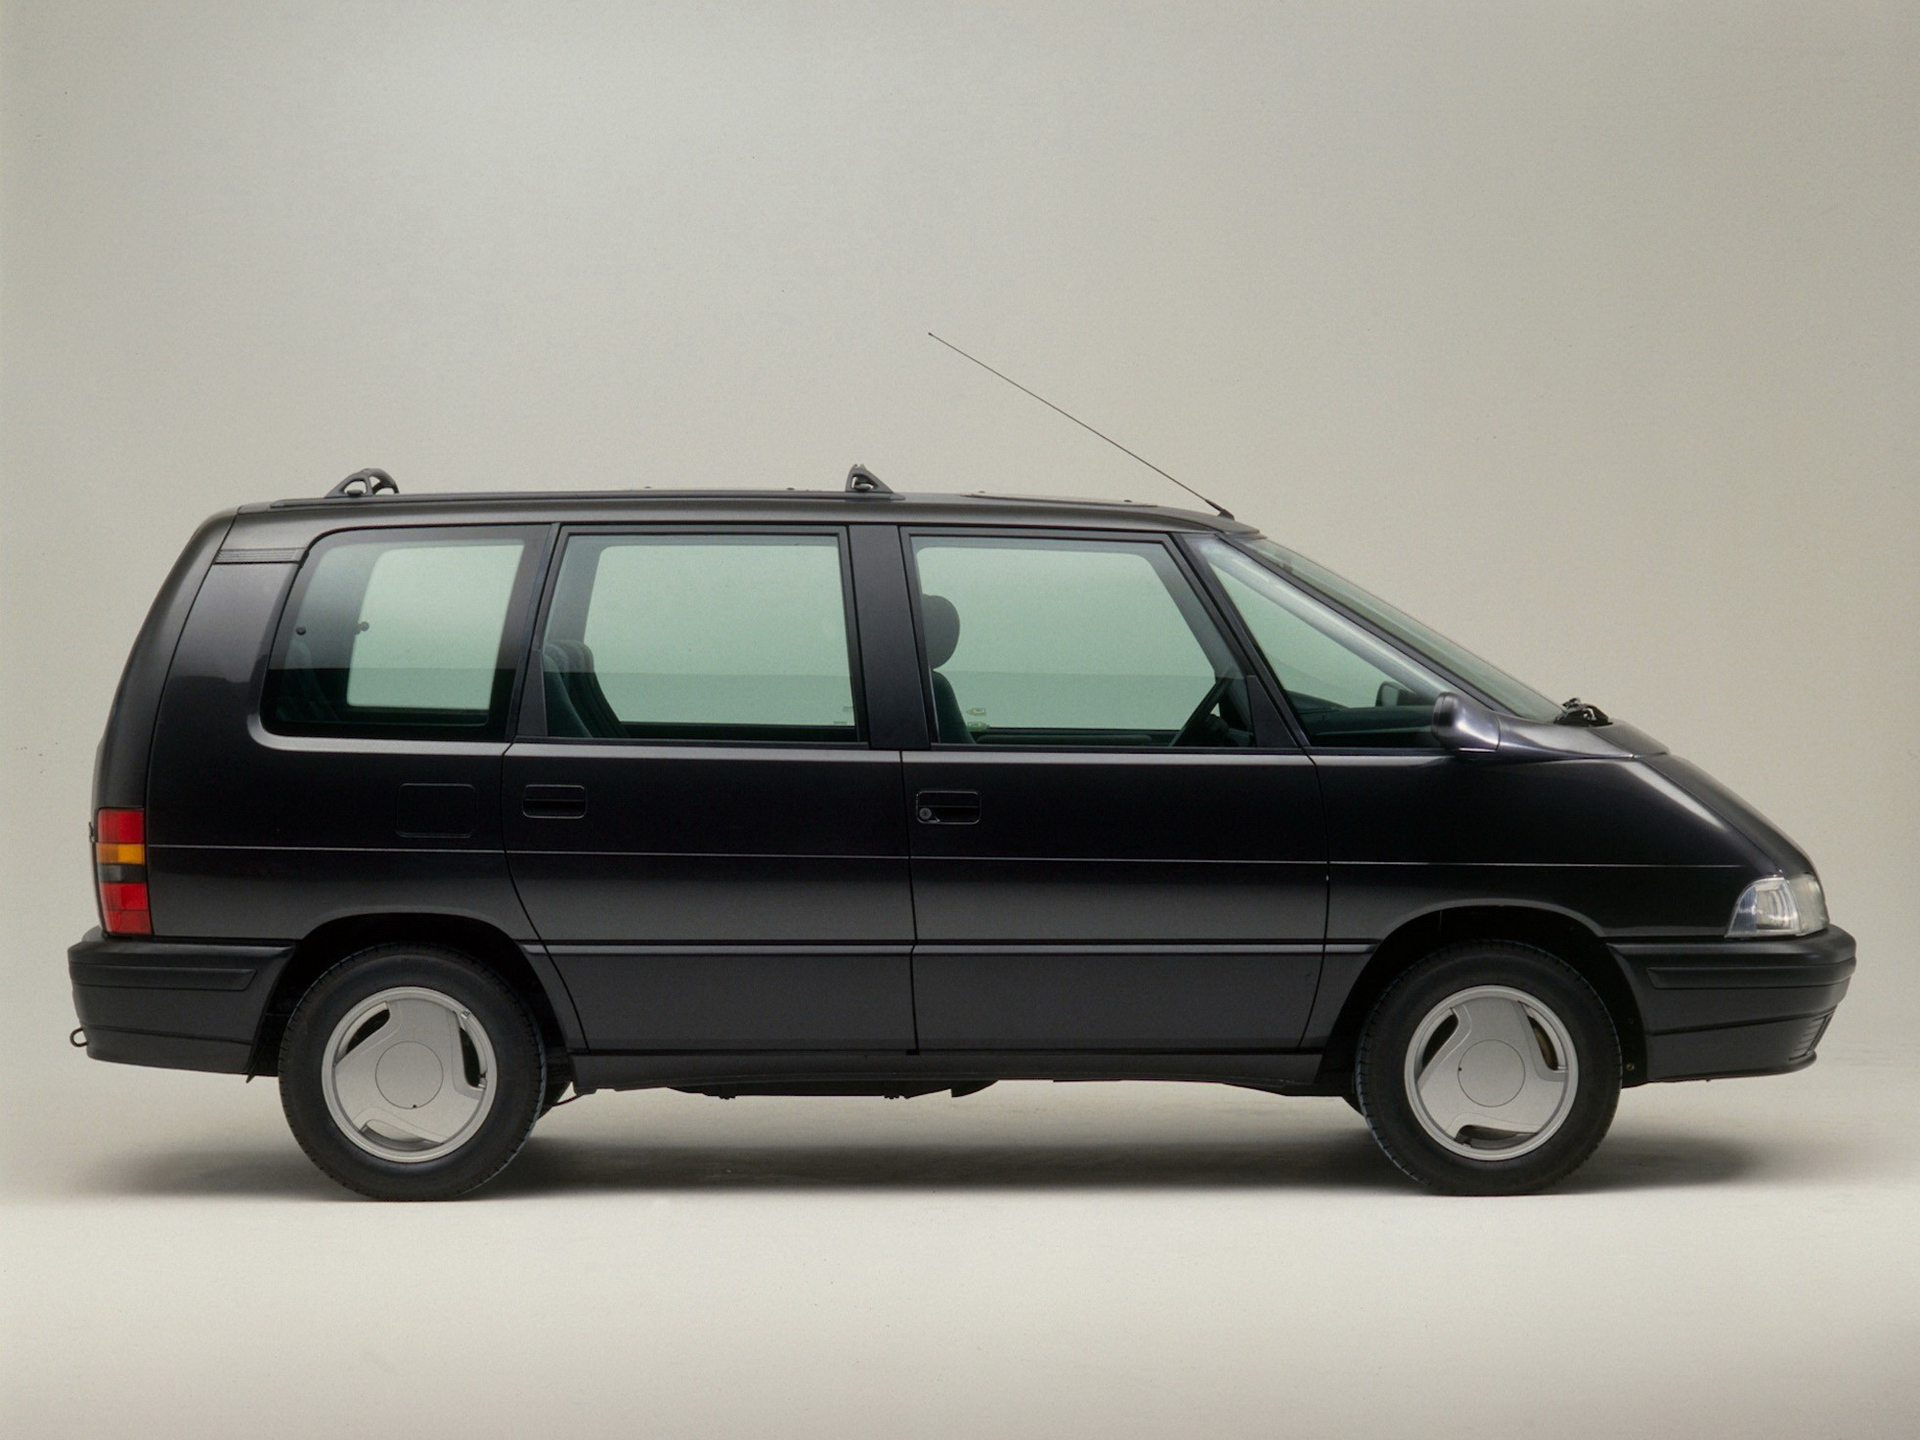 1991 renault espace ii j63 pictures information and. Black Bedroom Furniture Sets. Home Design Ideas